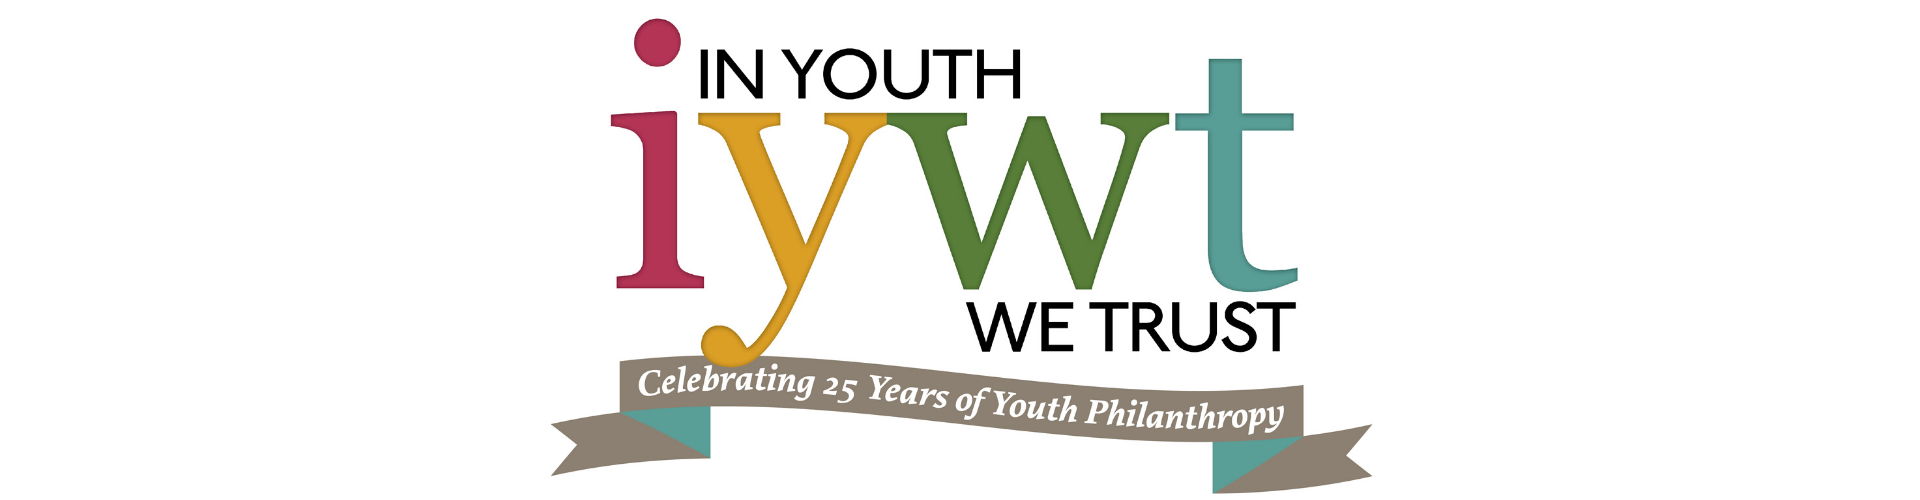 2020 In Youth We Trust Grant Recipients Announced